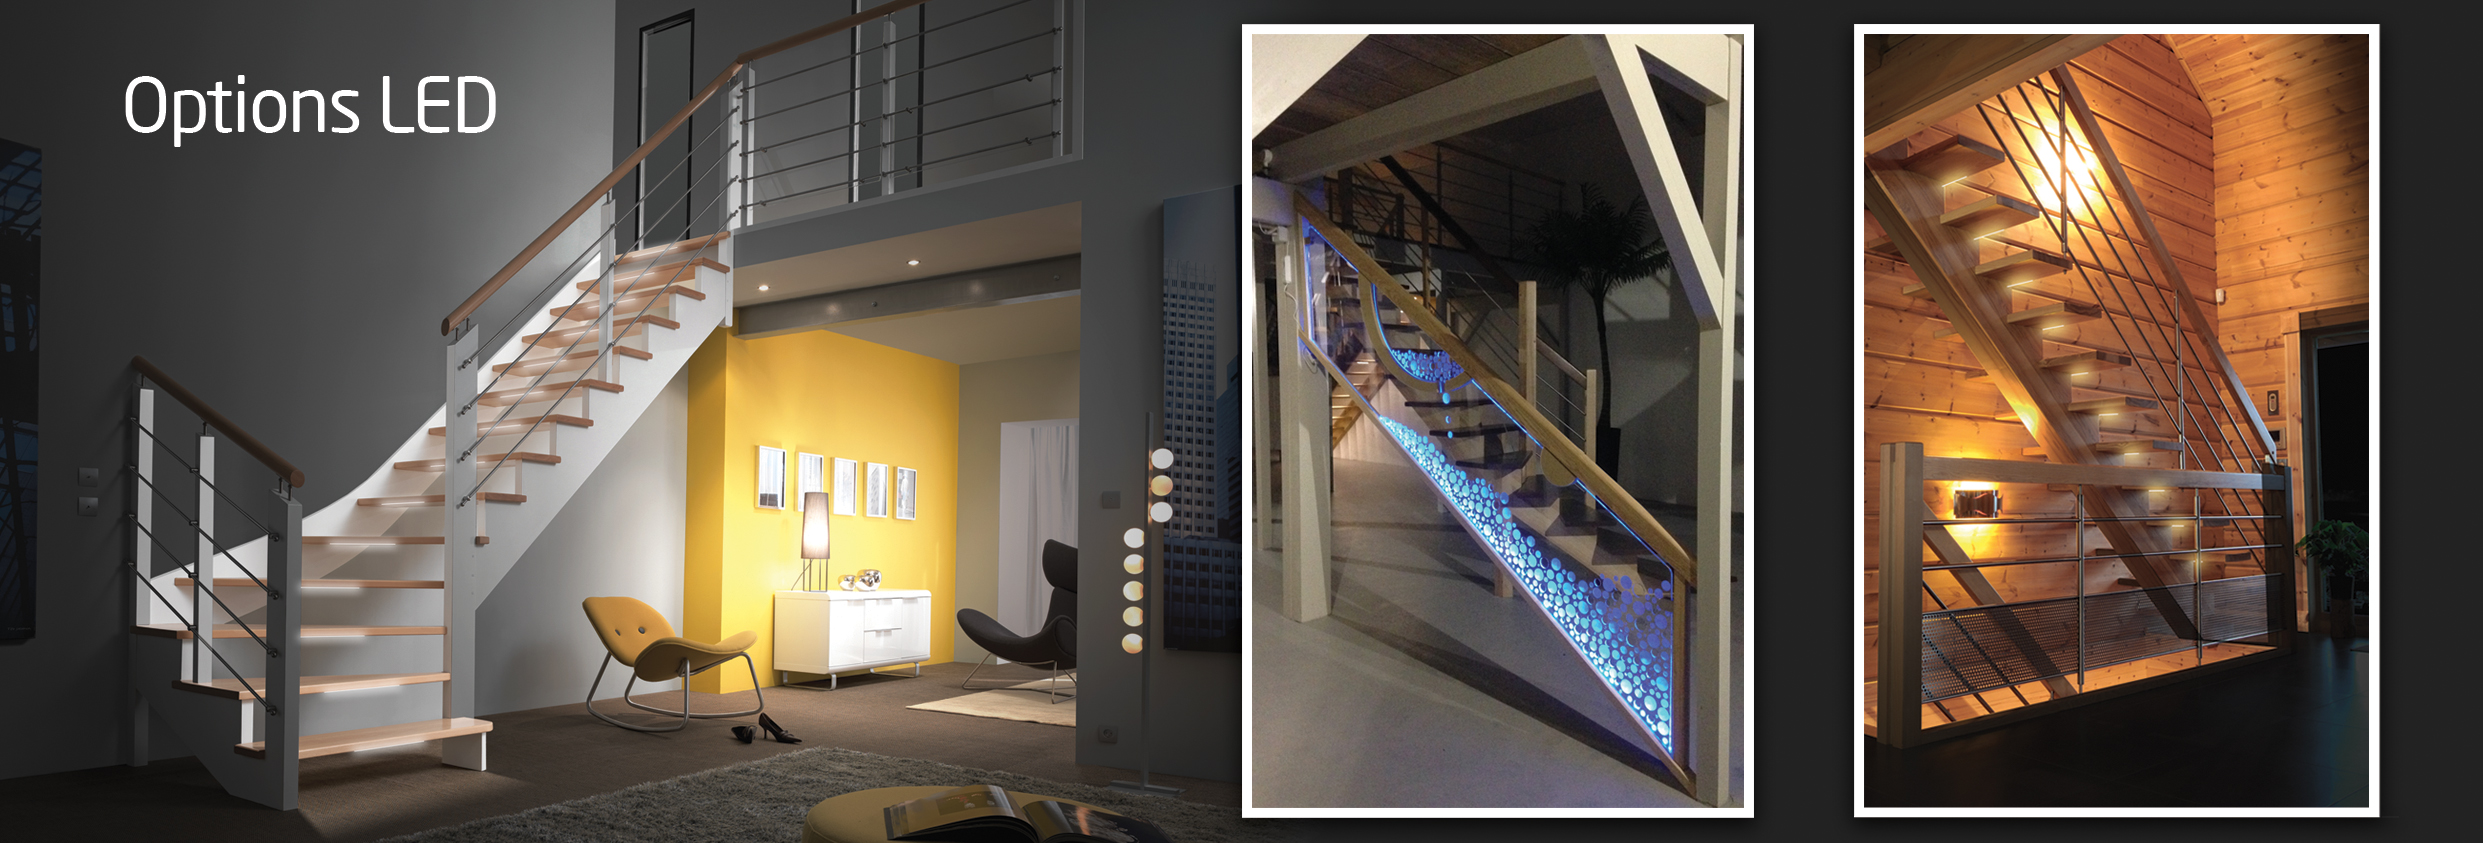 Eclairage Led Escalier Progressif Options Escaliers Flin